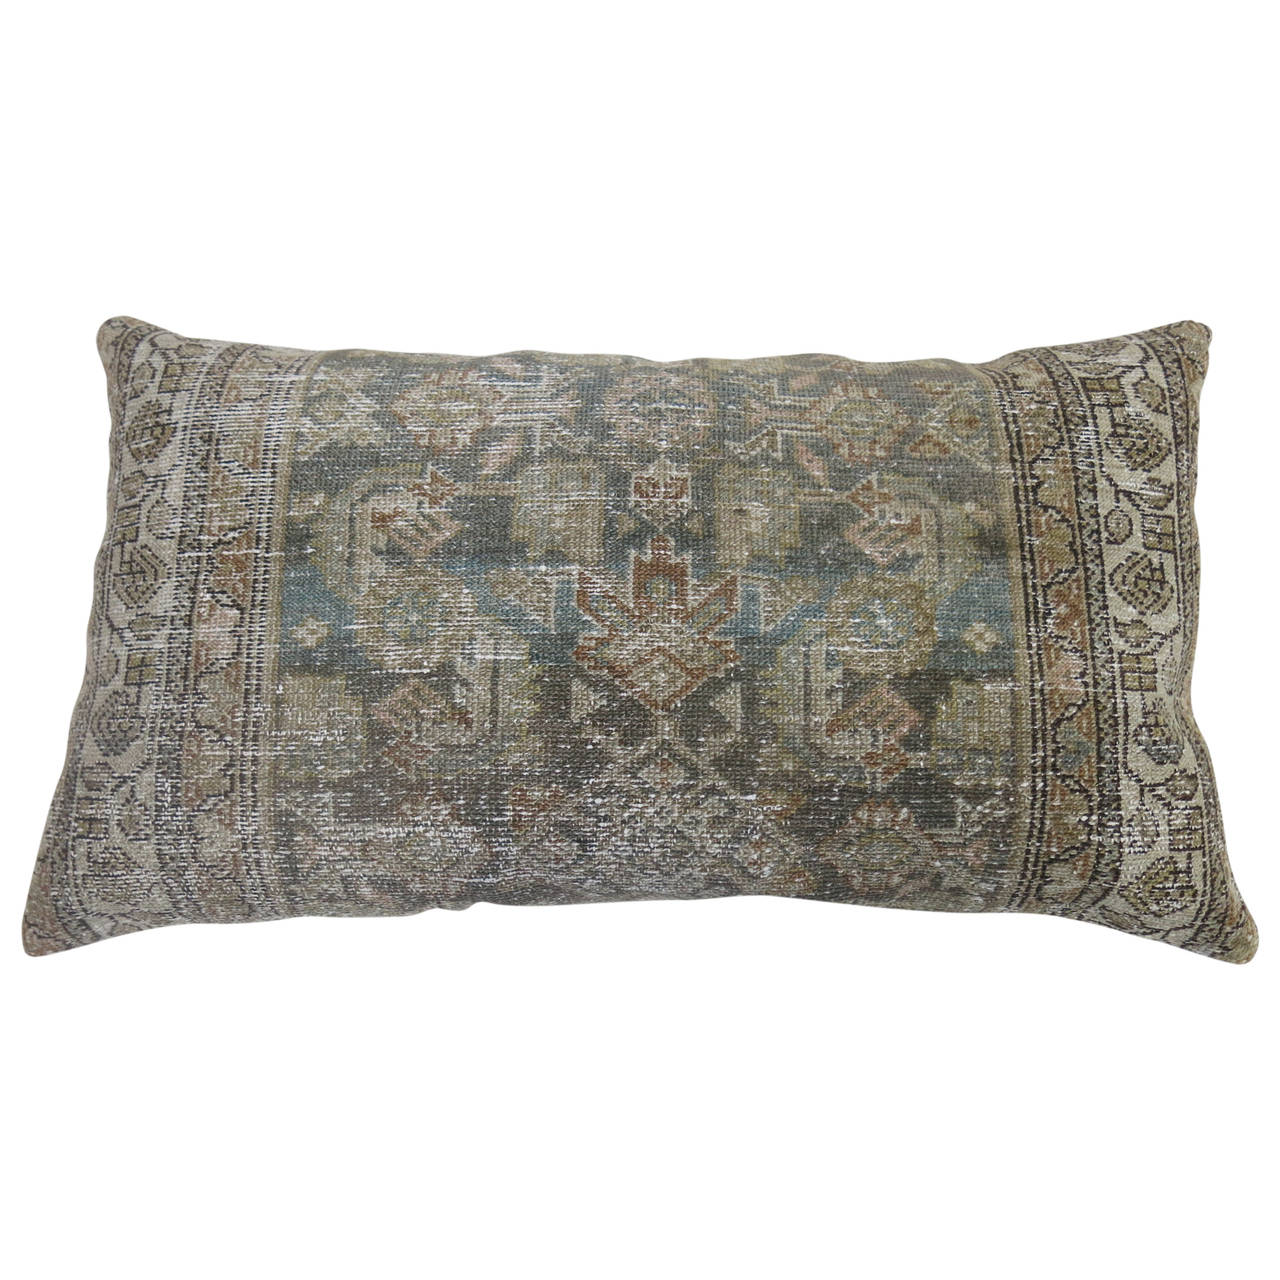 Malayer Rug Floor Pillow with Herati Design For Sale at 1stdibs